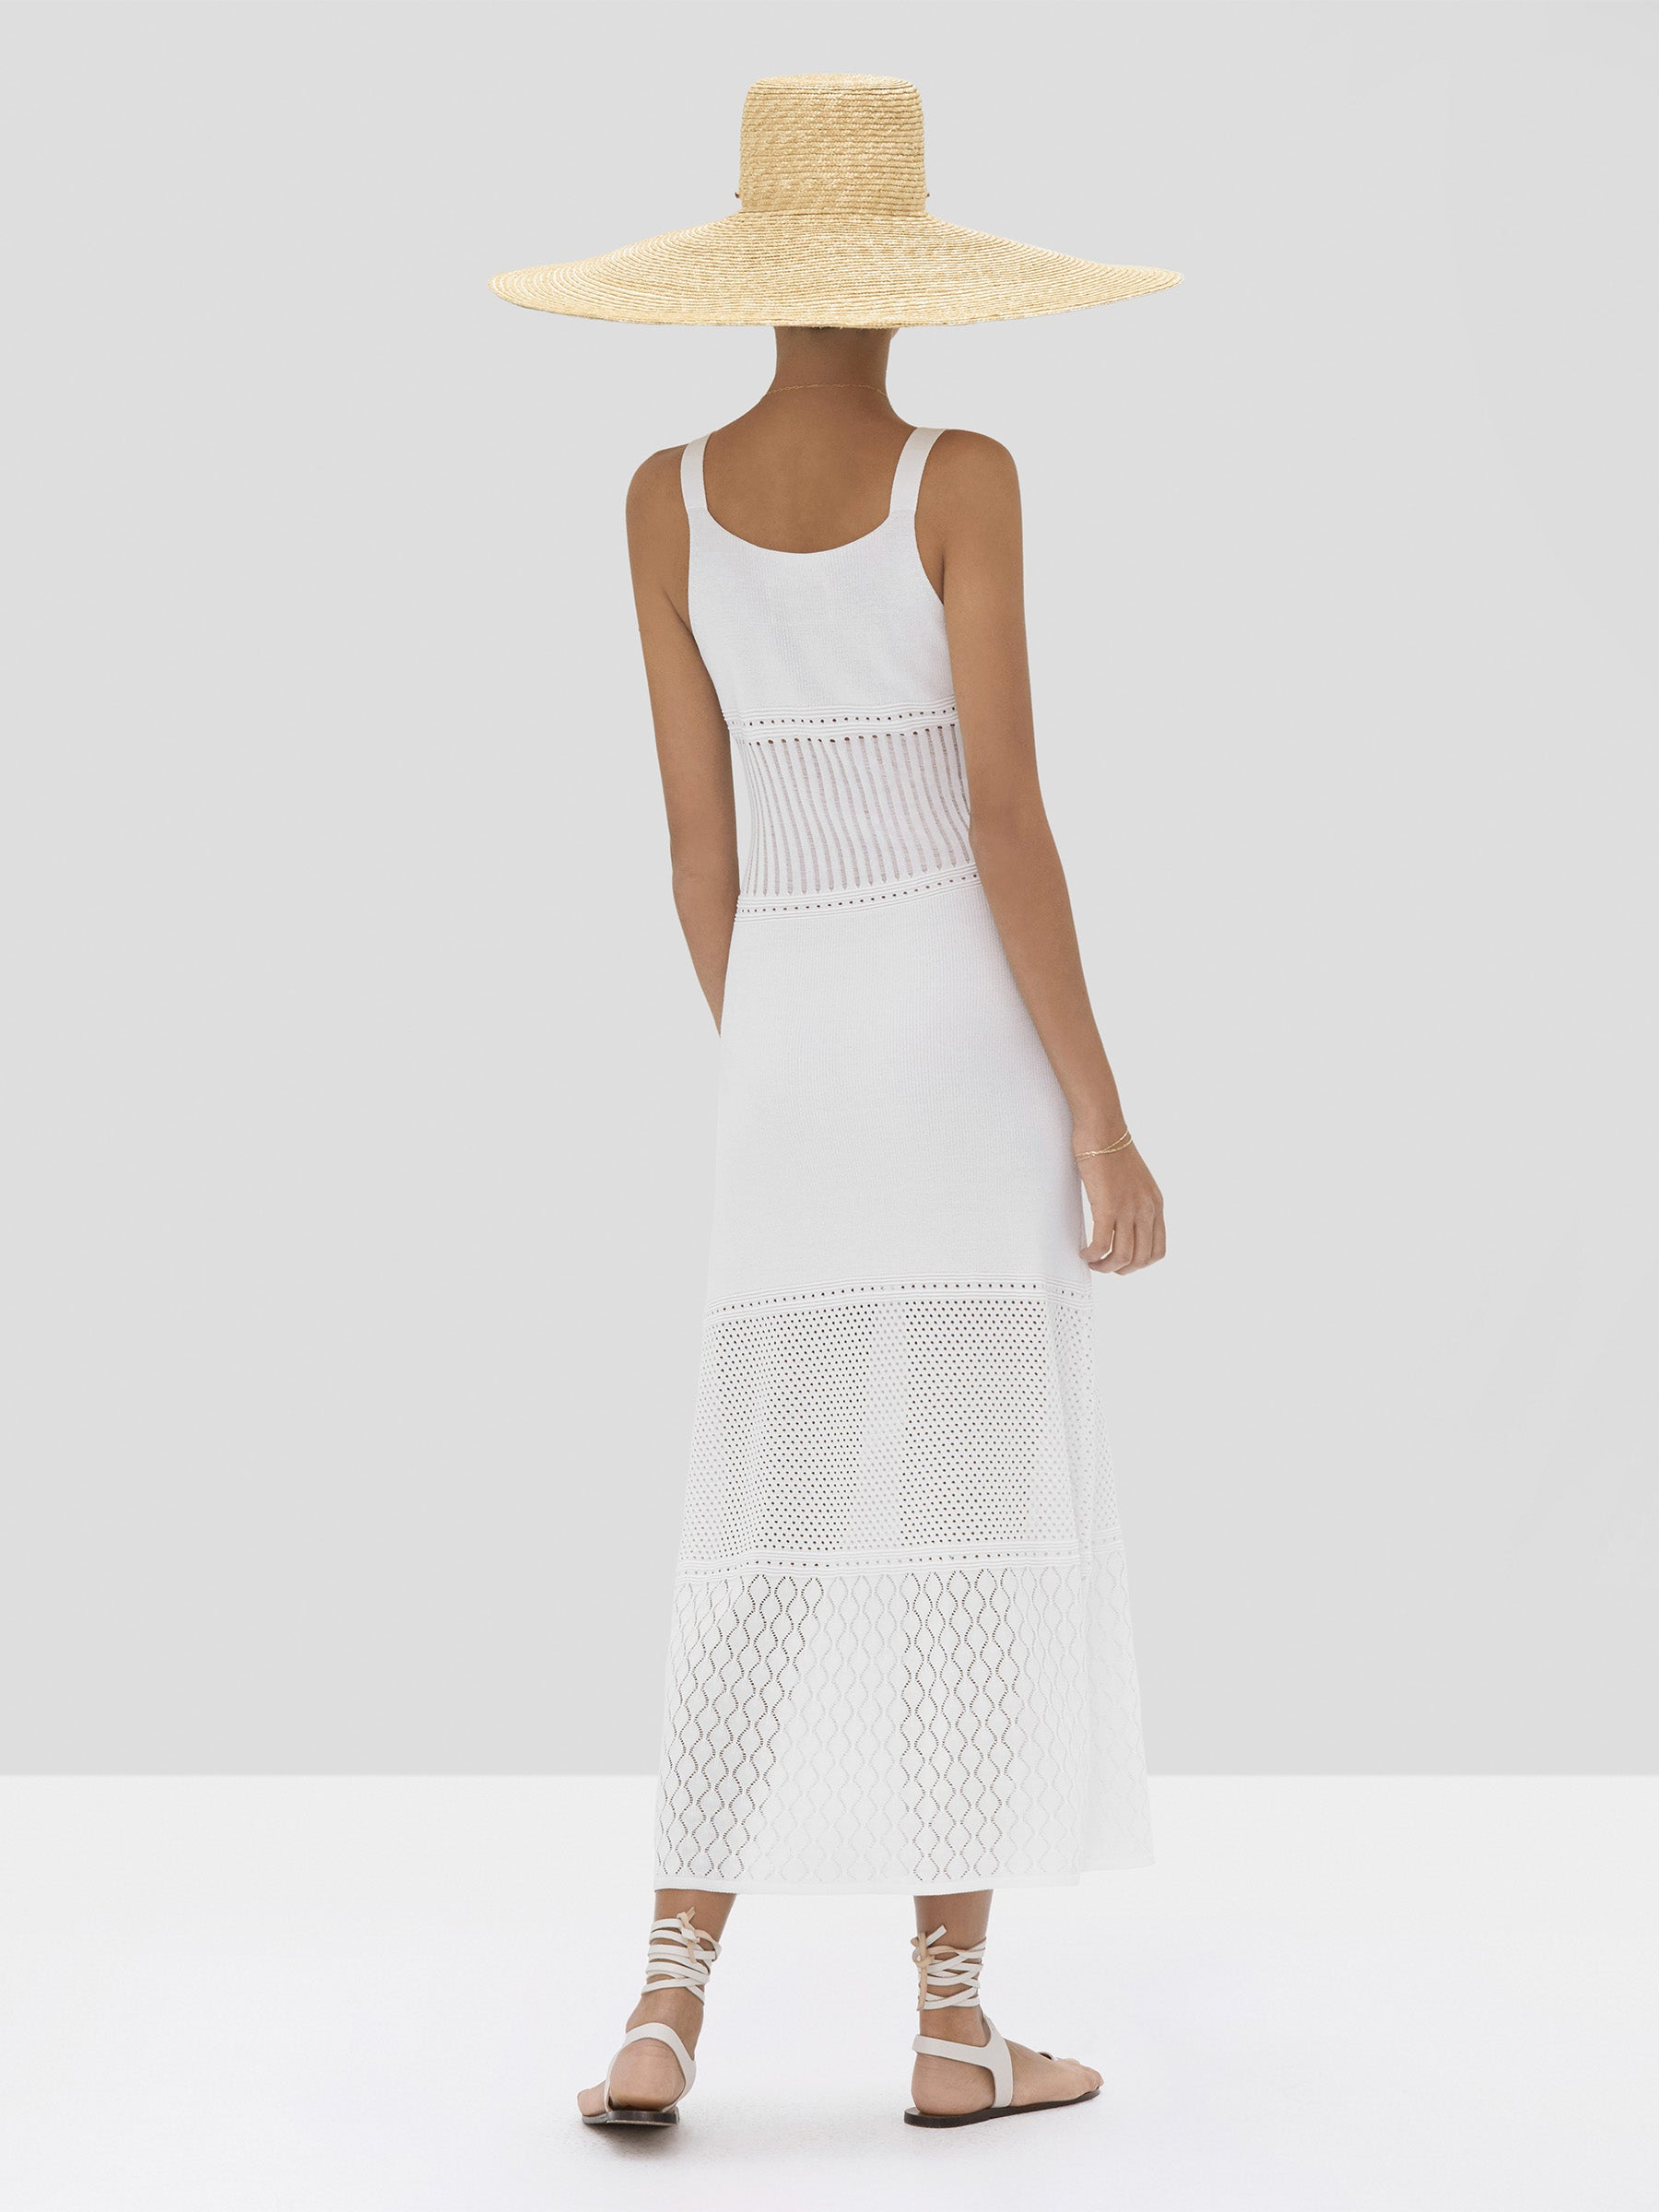 Alexis Rozanna Dress in White from Spring Summer 2020 - Rear View